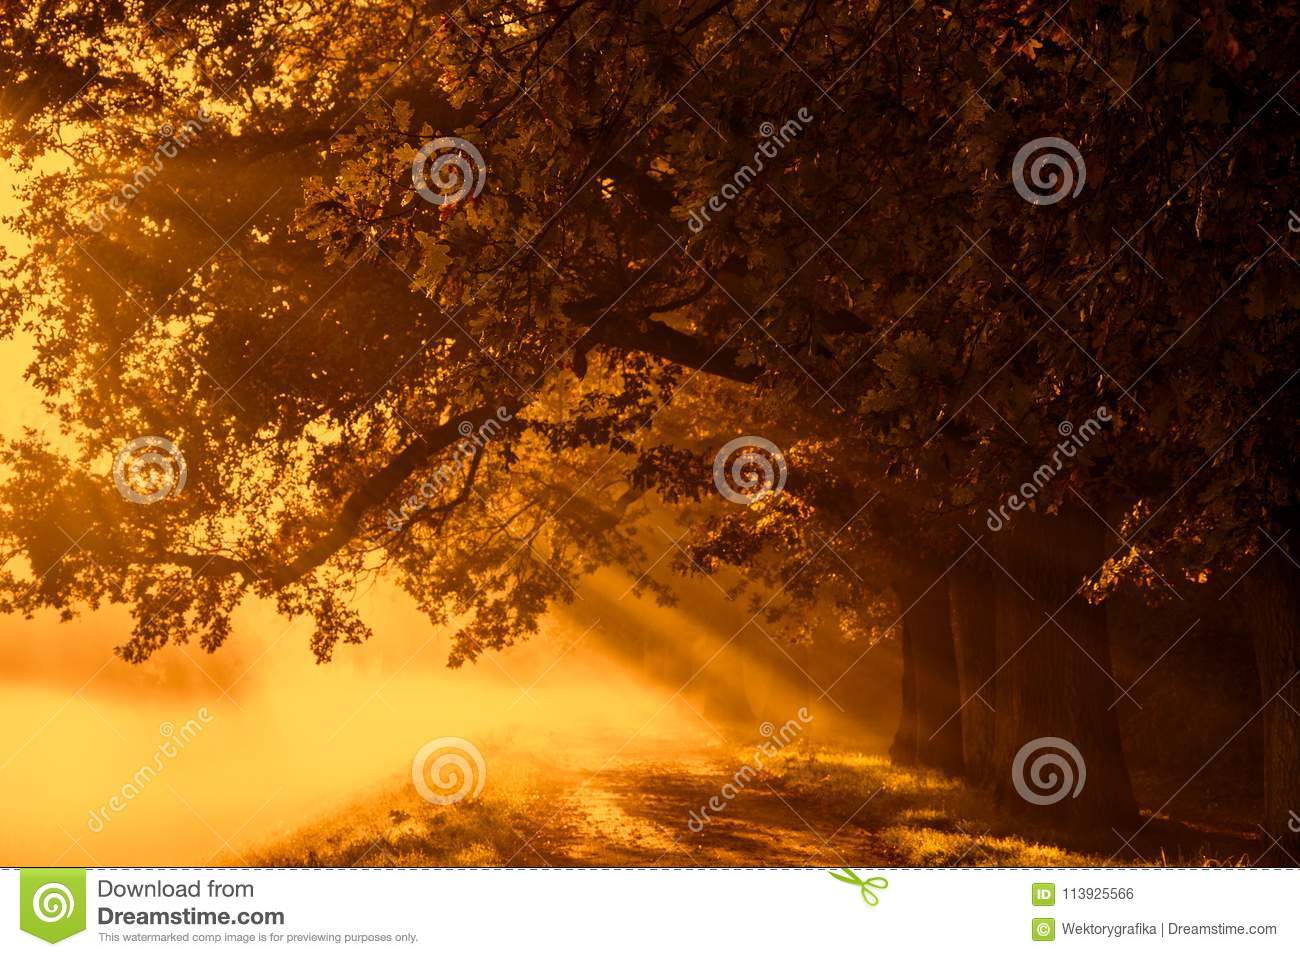 Sunrise with rays on the background of a foggy mysterious path i